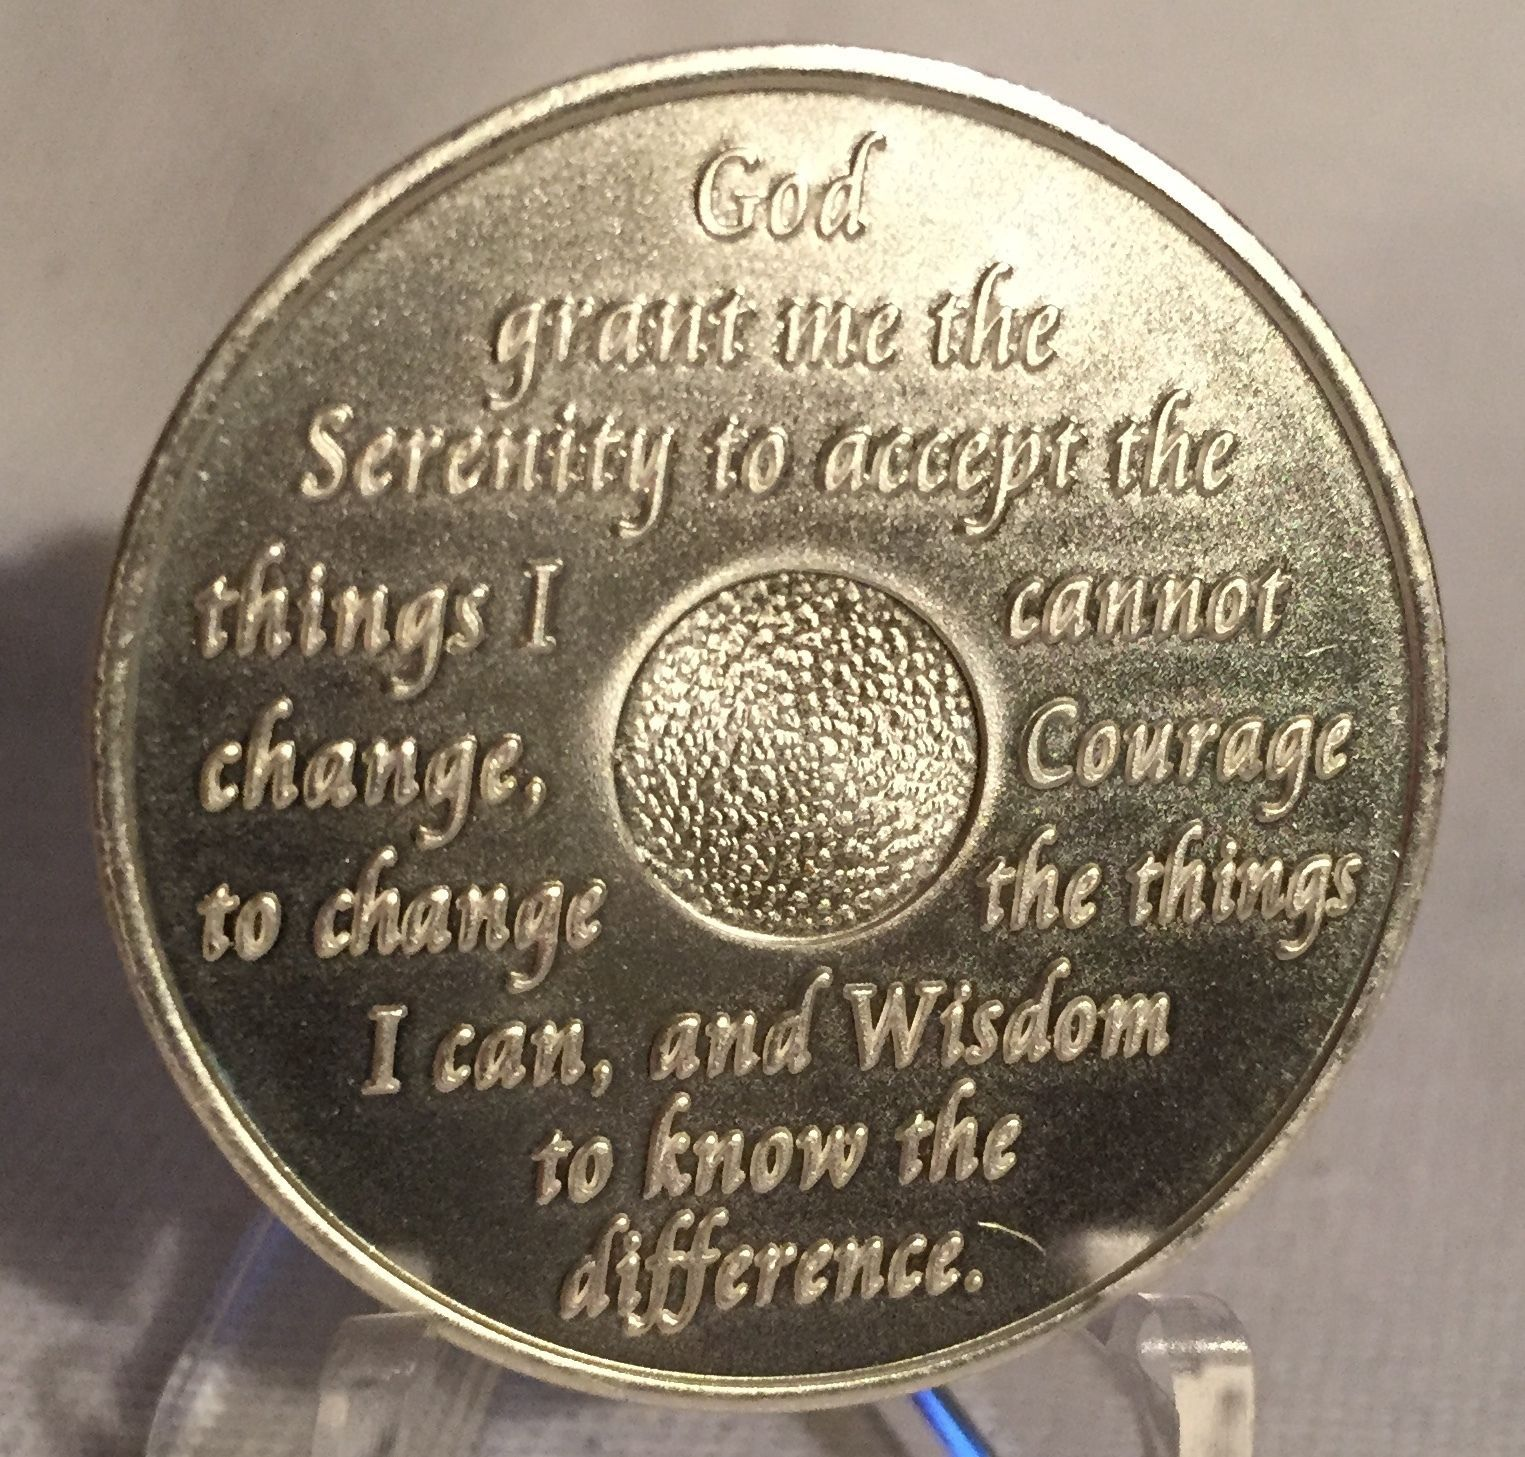 Purple /& Silver Plated 30 Year AA Chip Alcoholics Anonymous Medallion Coin